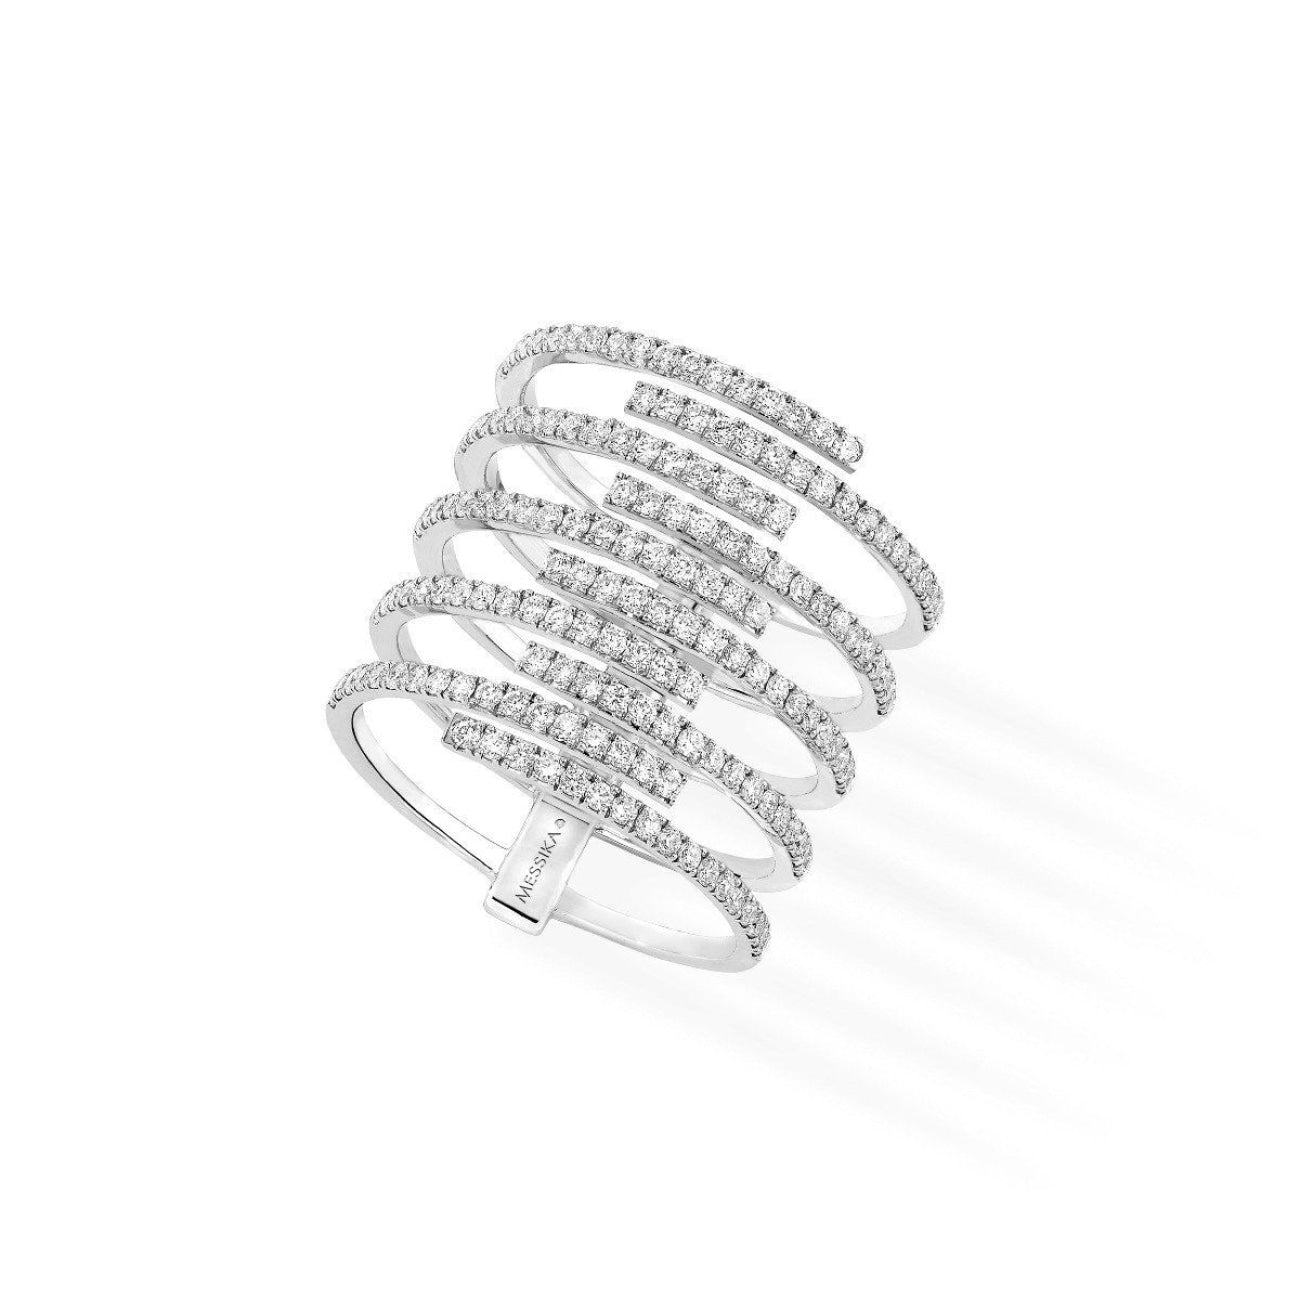 Messika Jewelry - Gatsby 10 Rows RING - WHITE GOLD | Manfredi Jewels